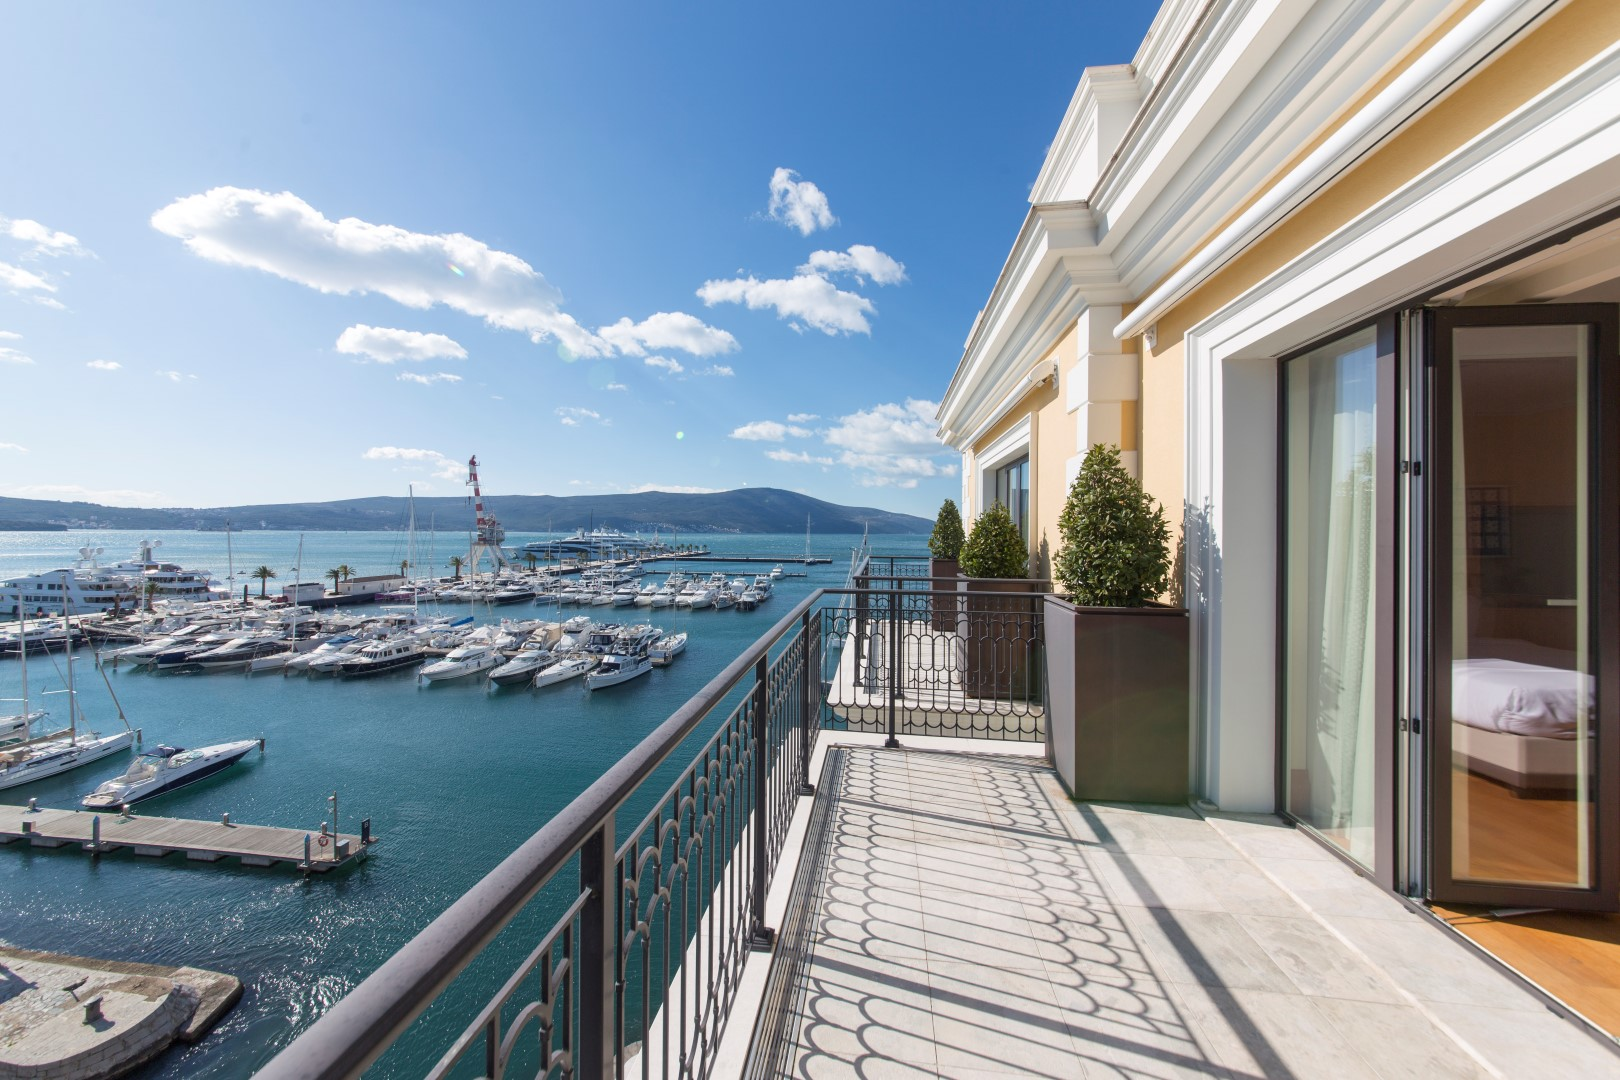 Tivat, Porto Montenegro – three bedroom apartment with open sea view, Regent hotel